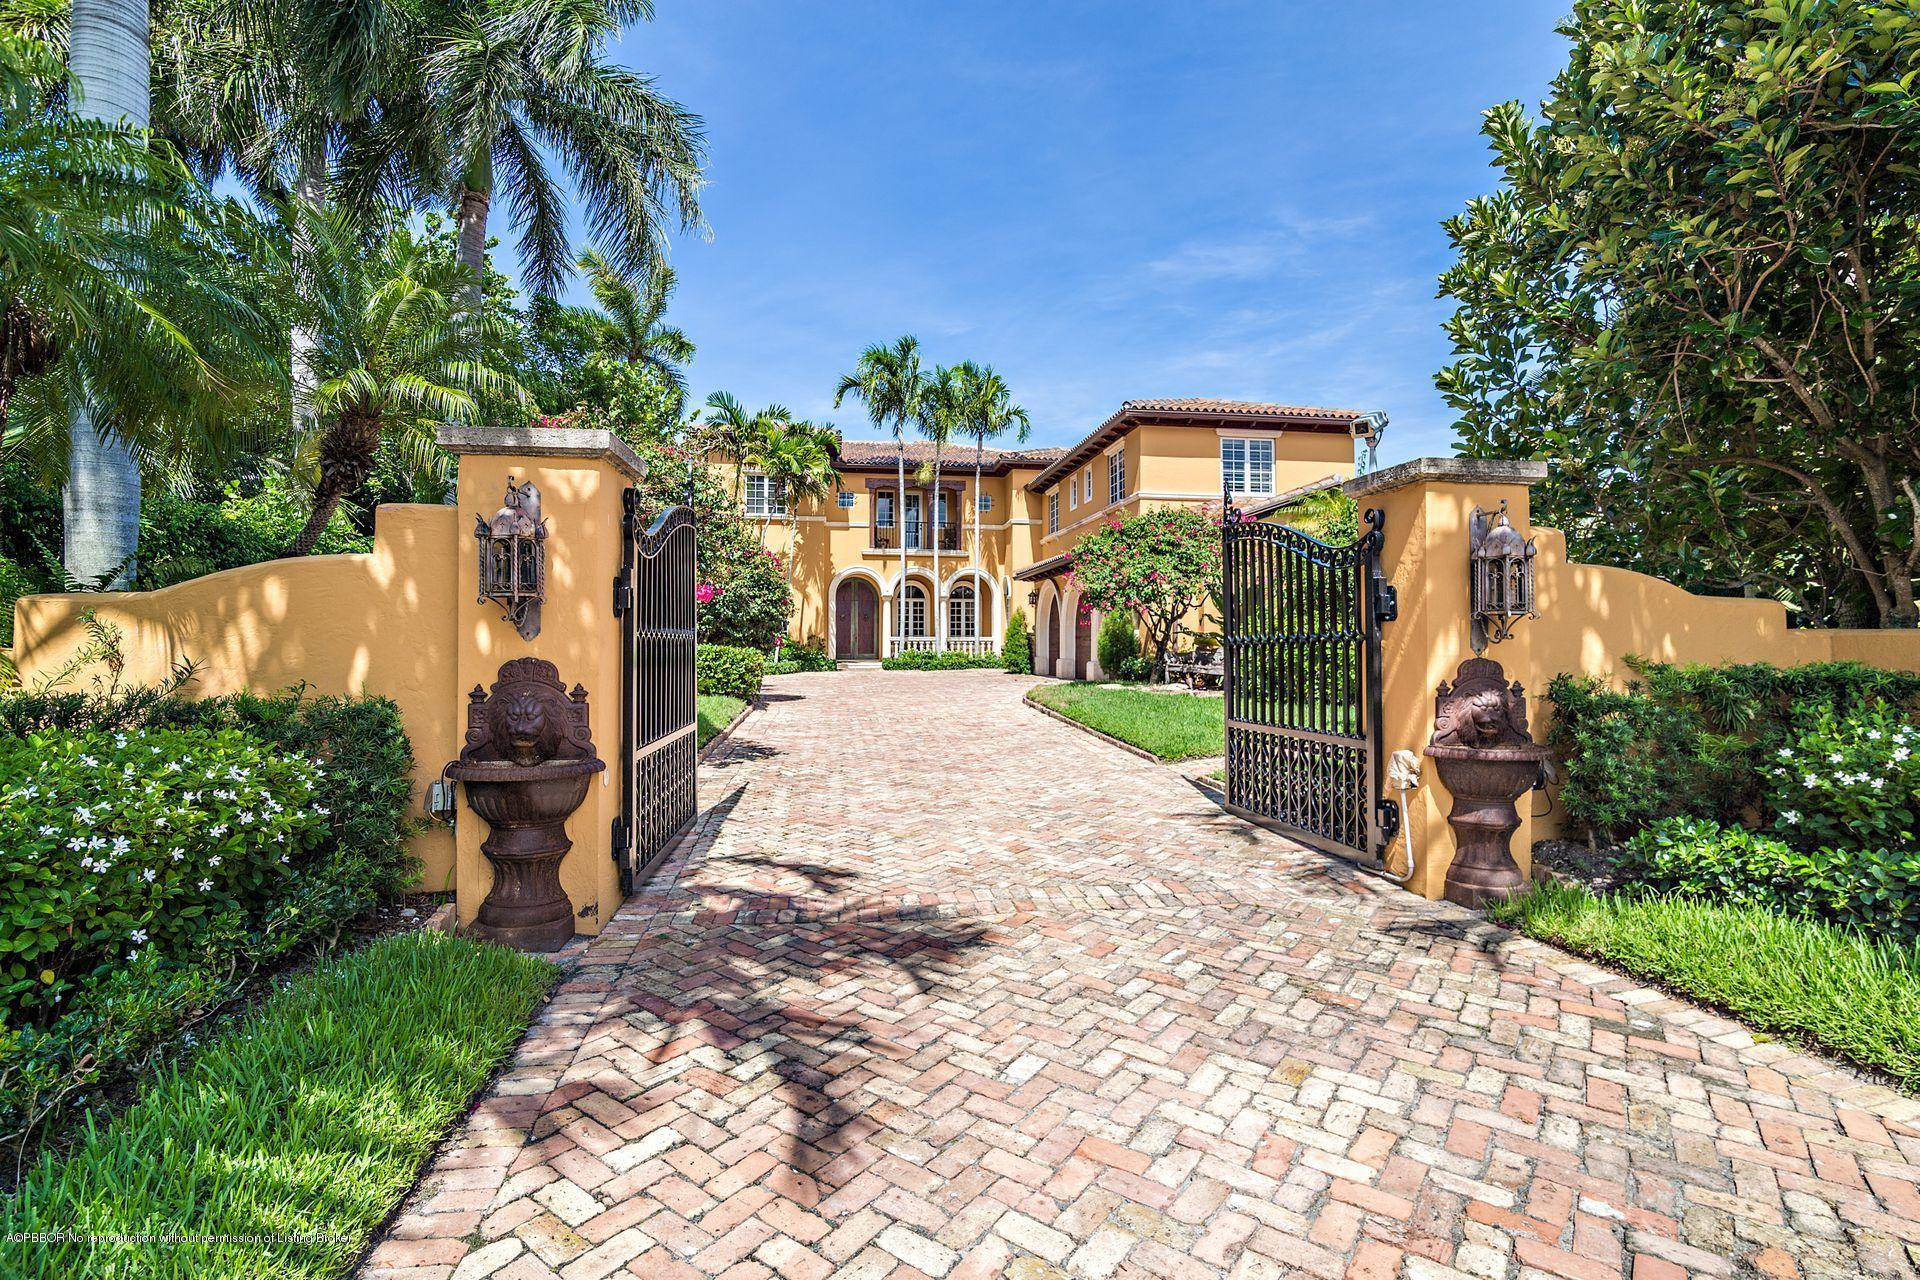 3180 Washington Road - West Palm Beach, Florida